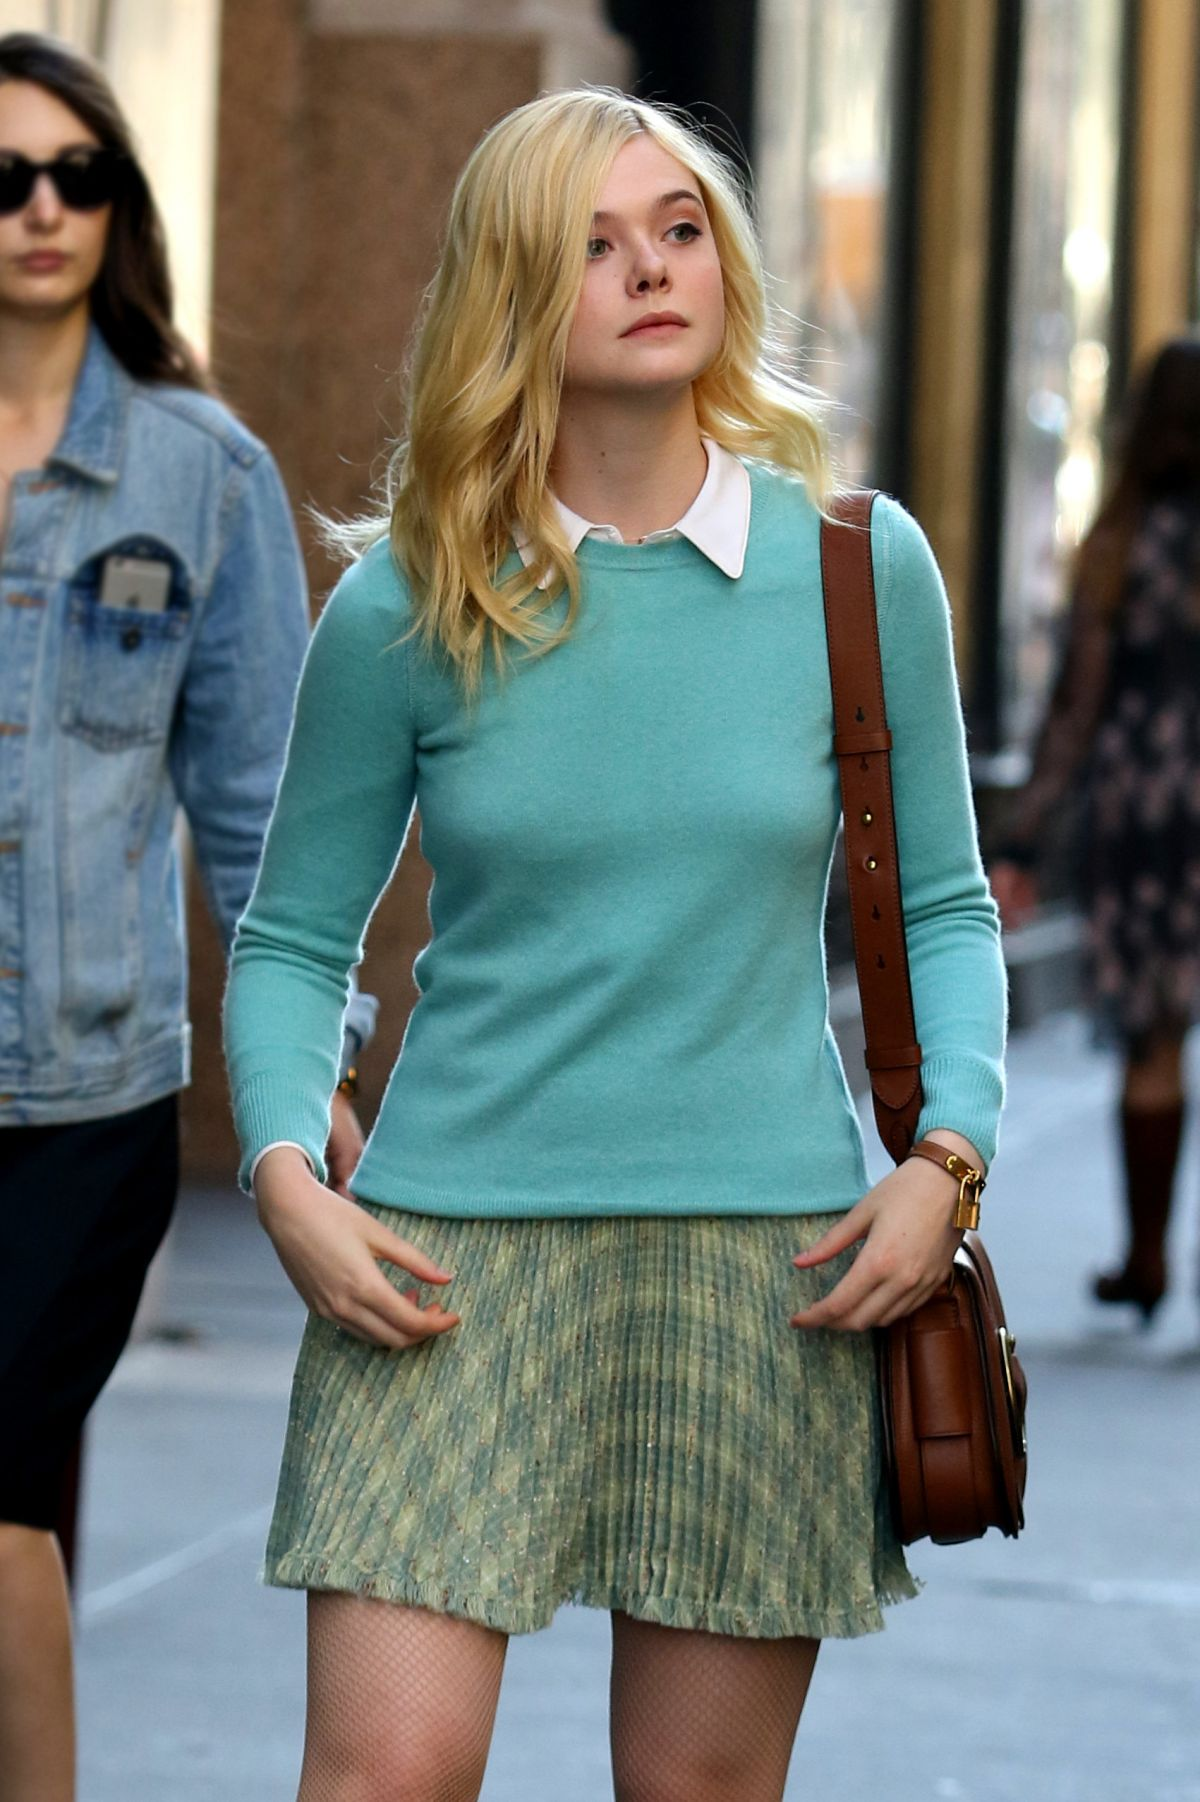 15 elle fanning - photo #27